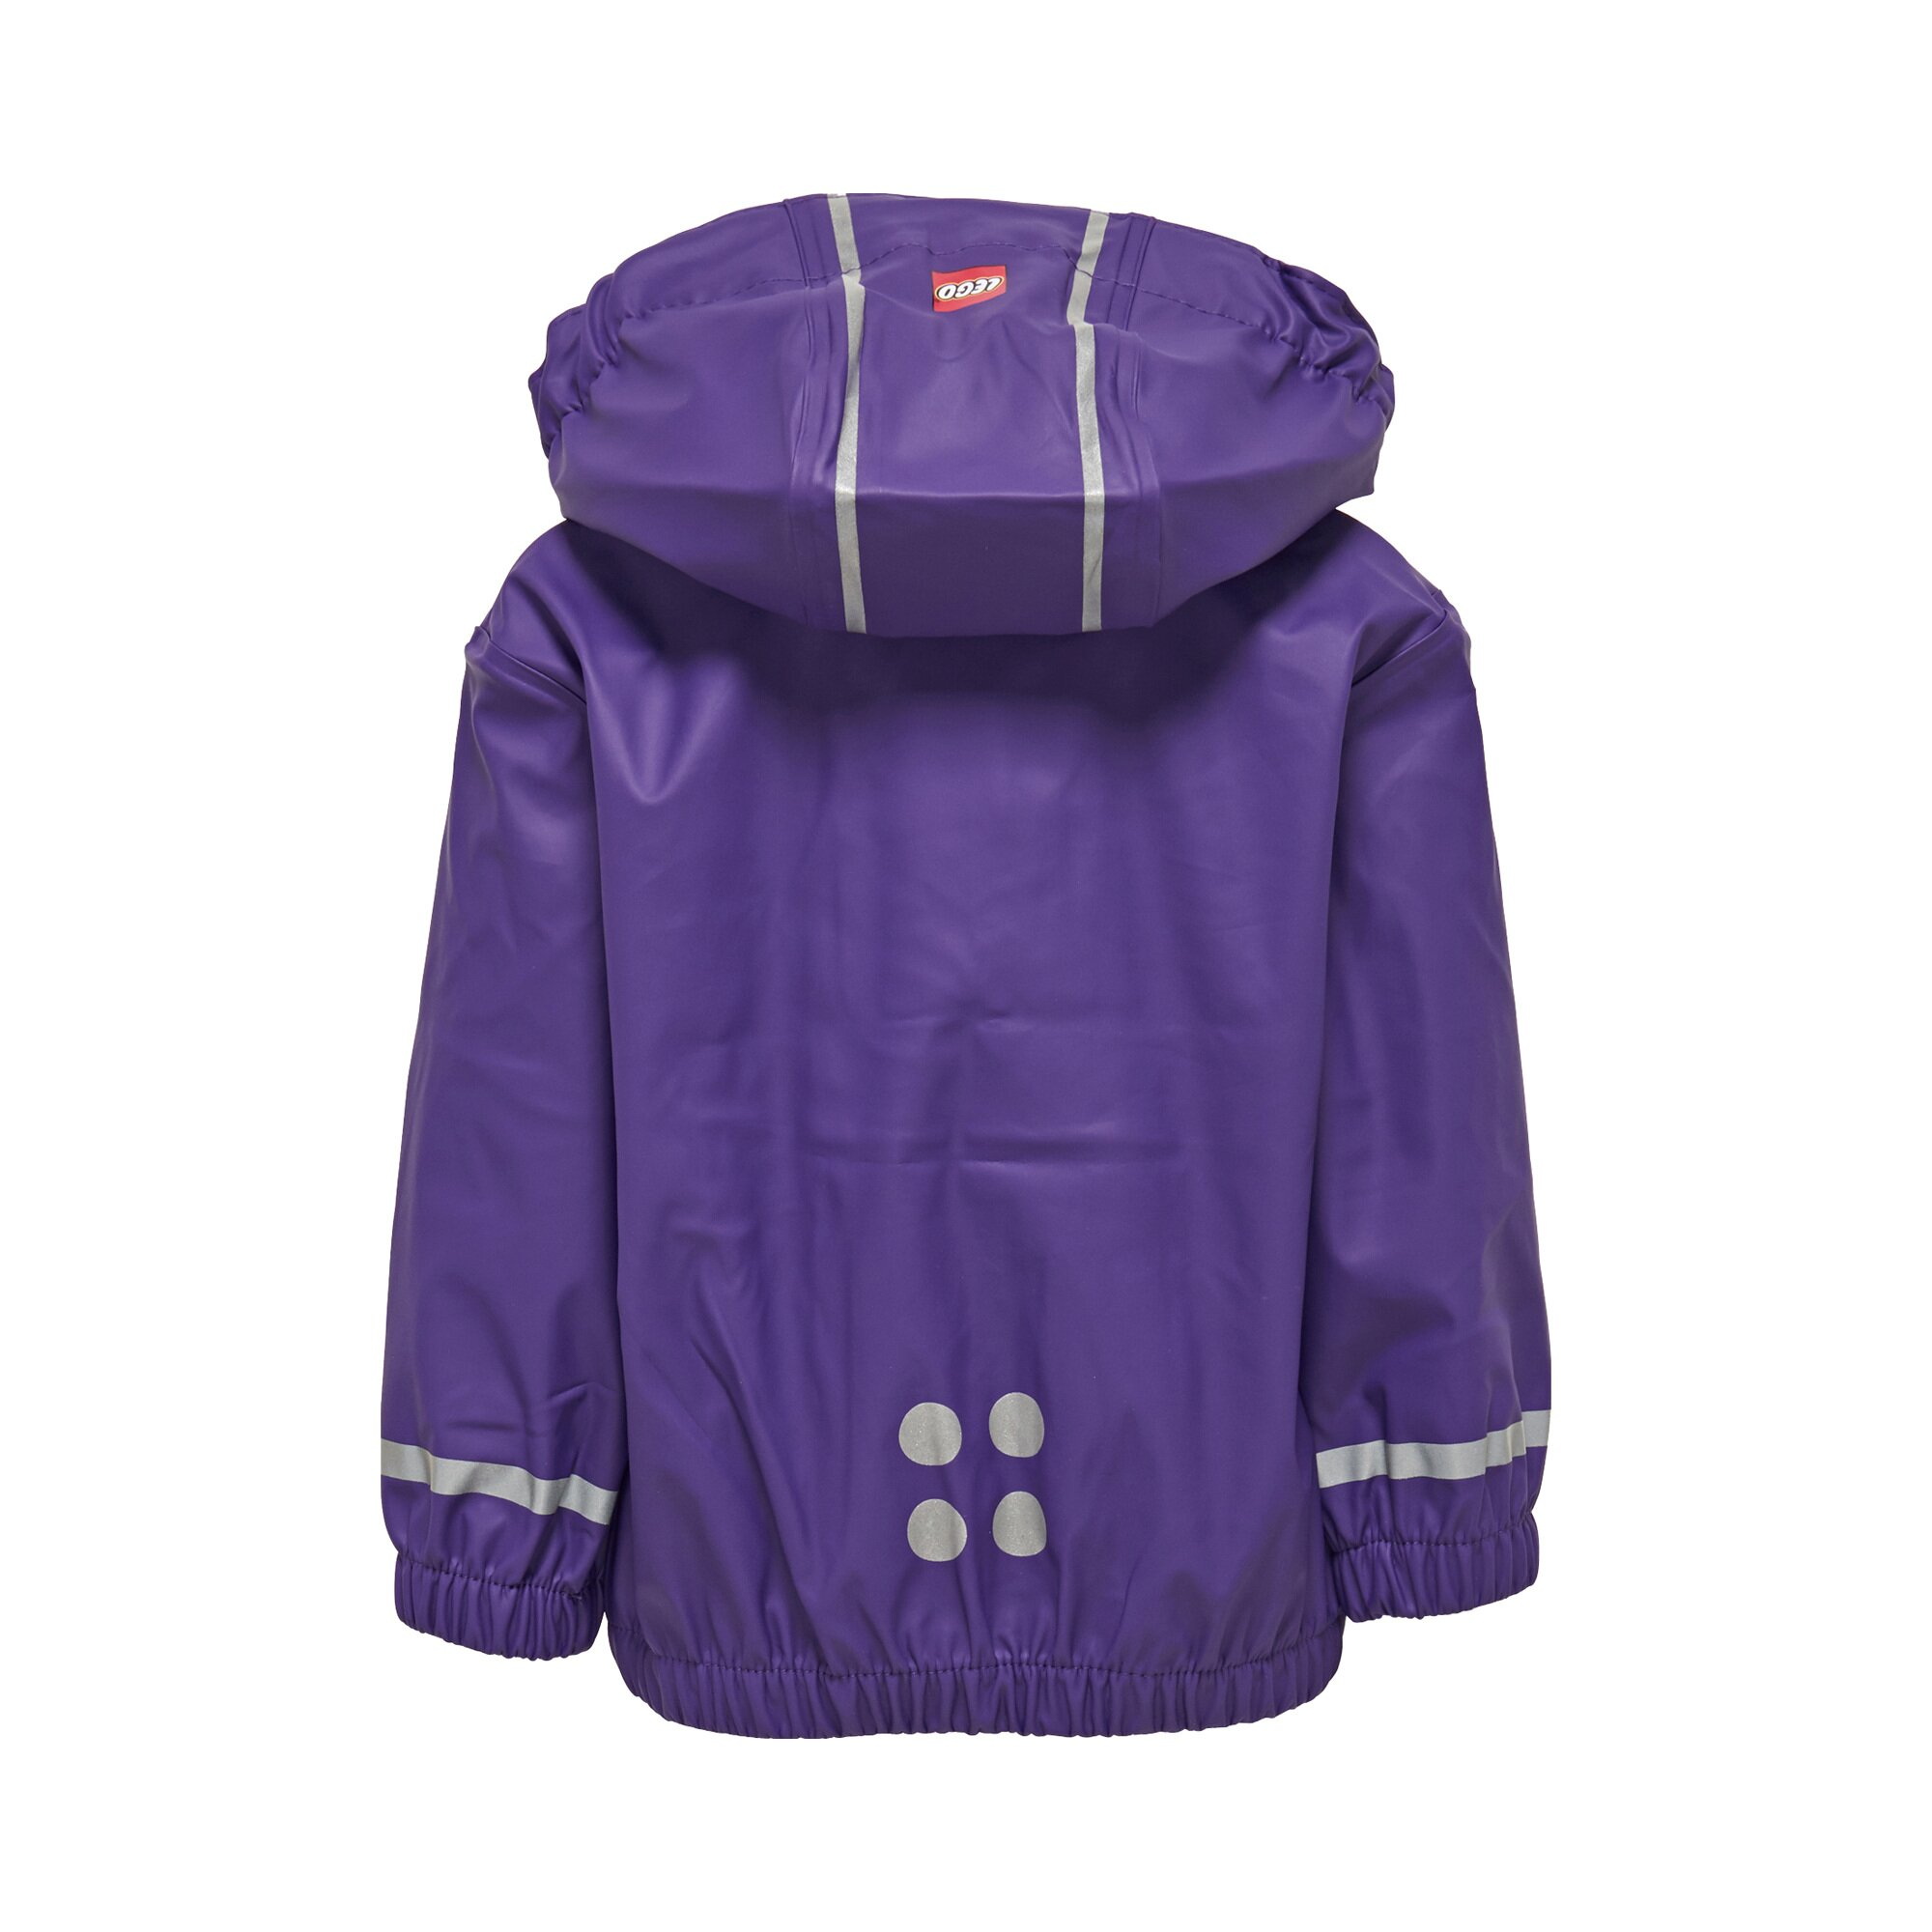 lego-wear-regenjacke-jane